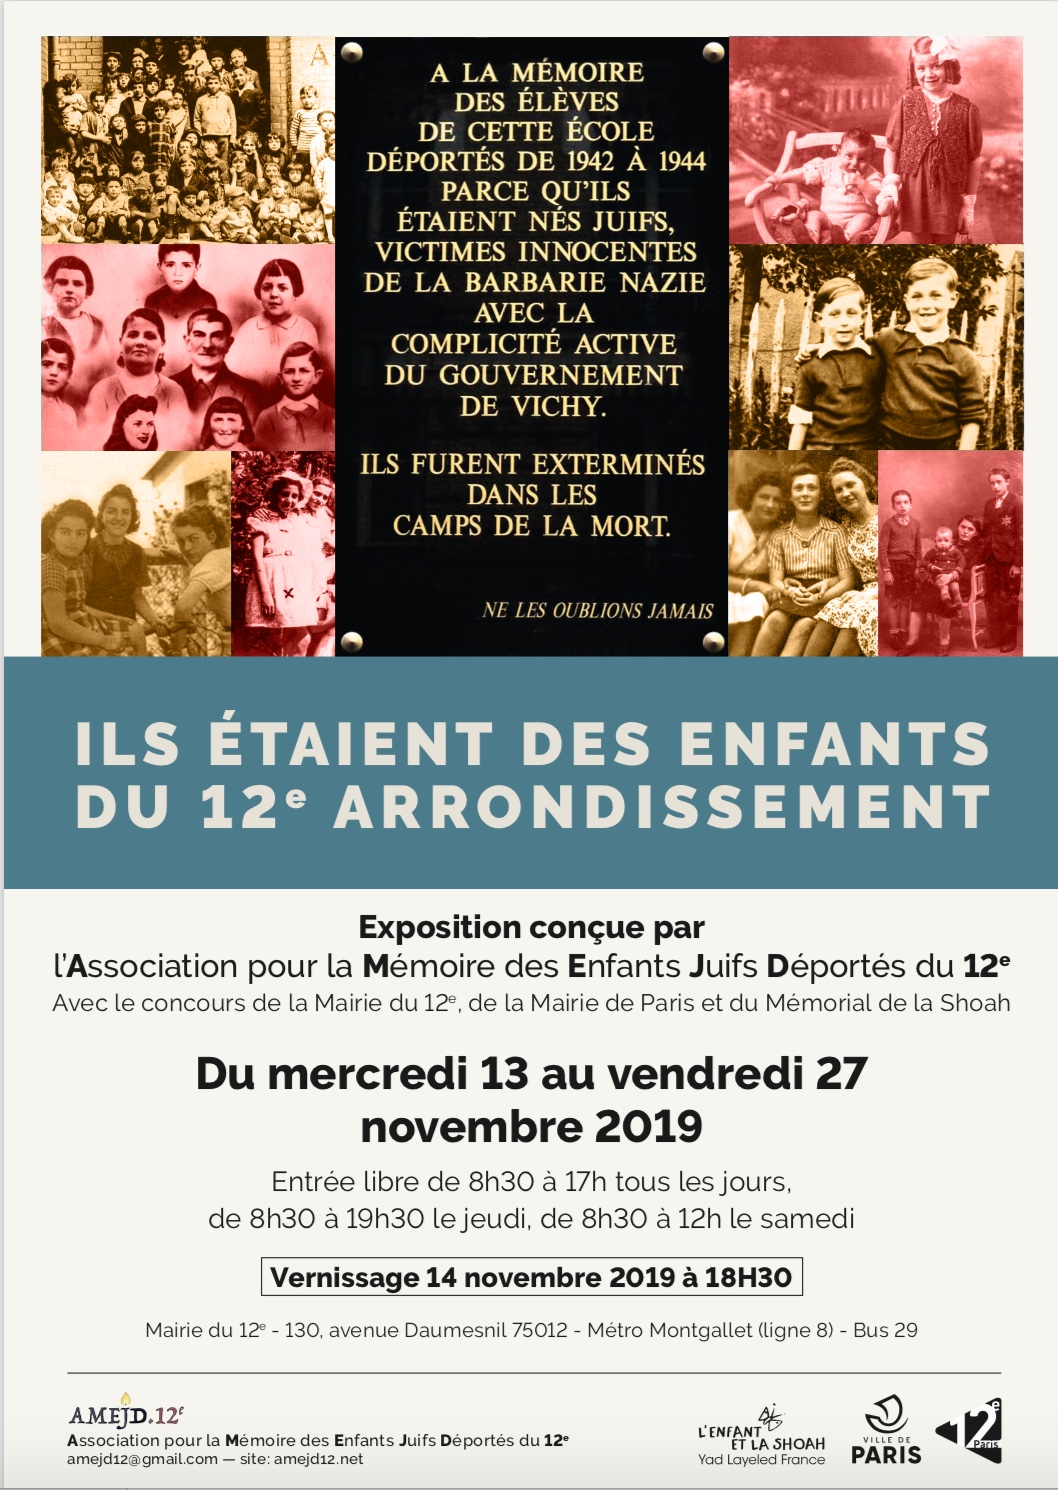 AMEJD 12-Affiche exposition 2019